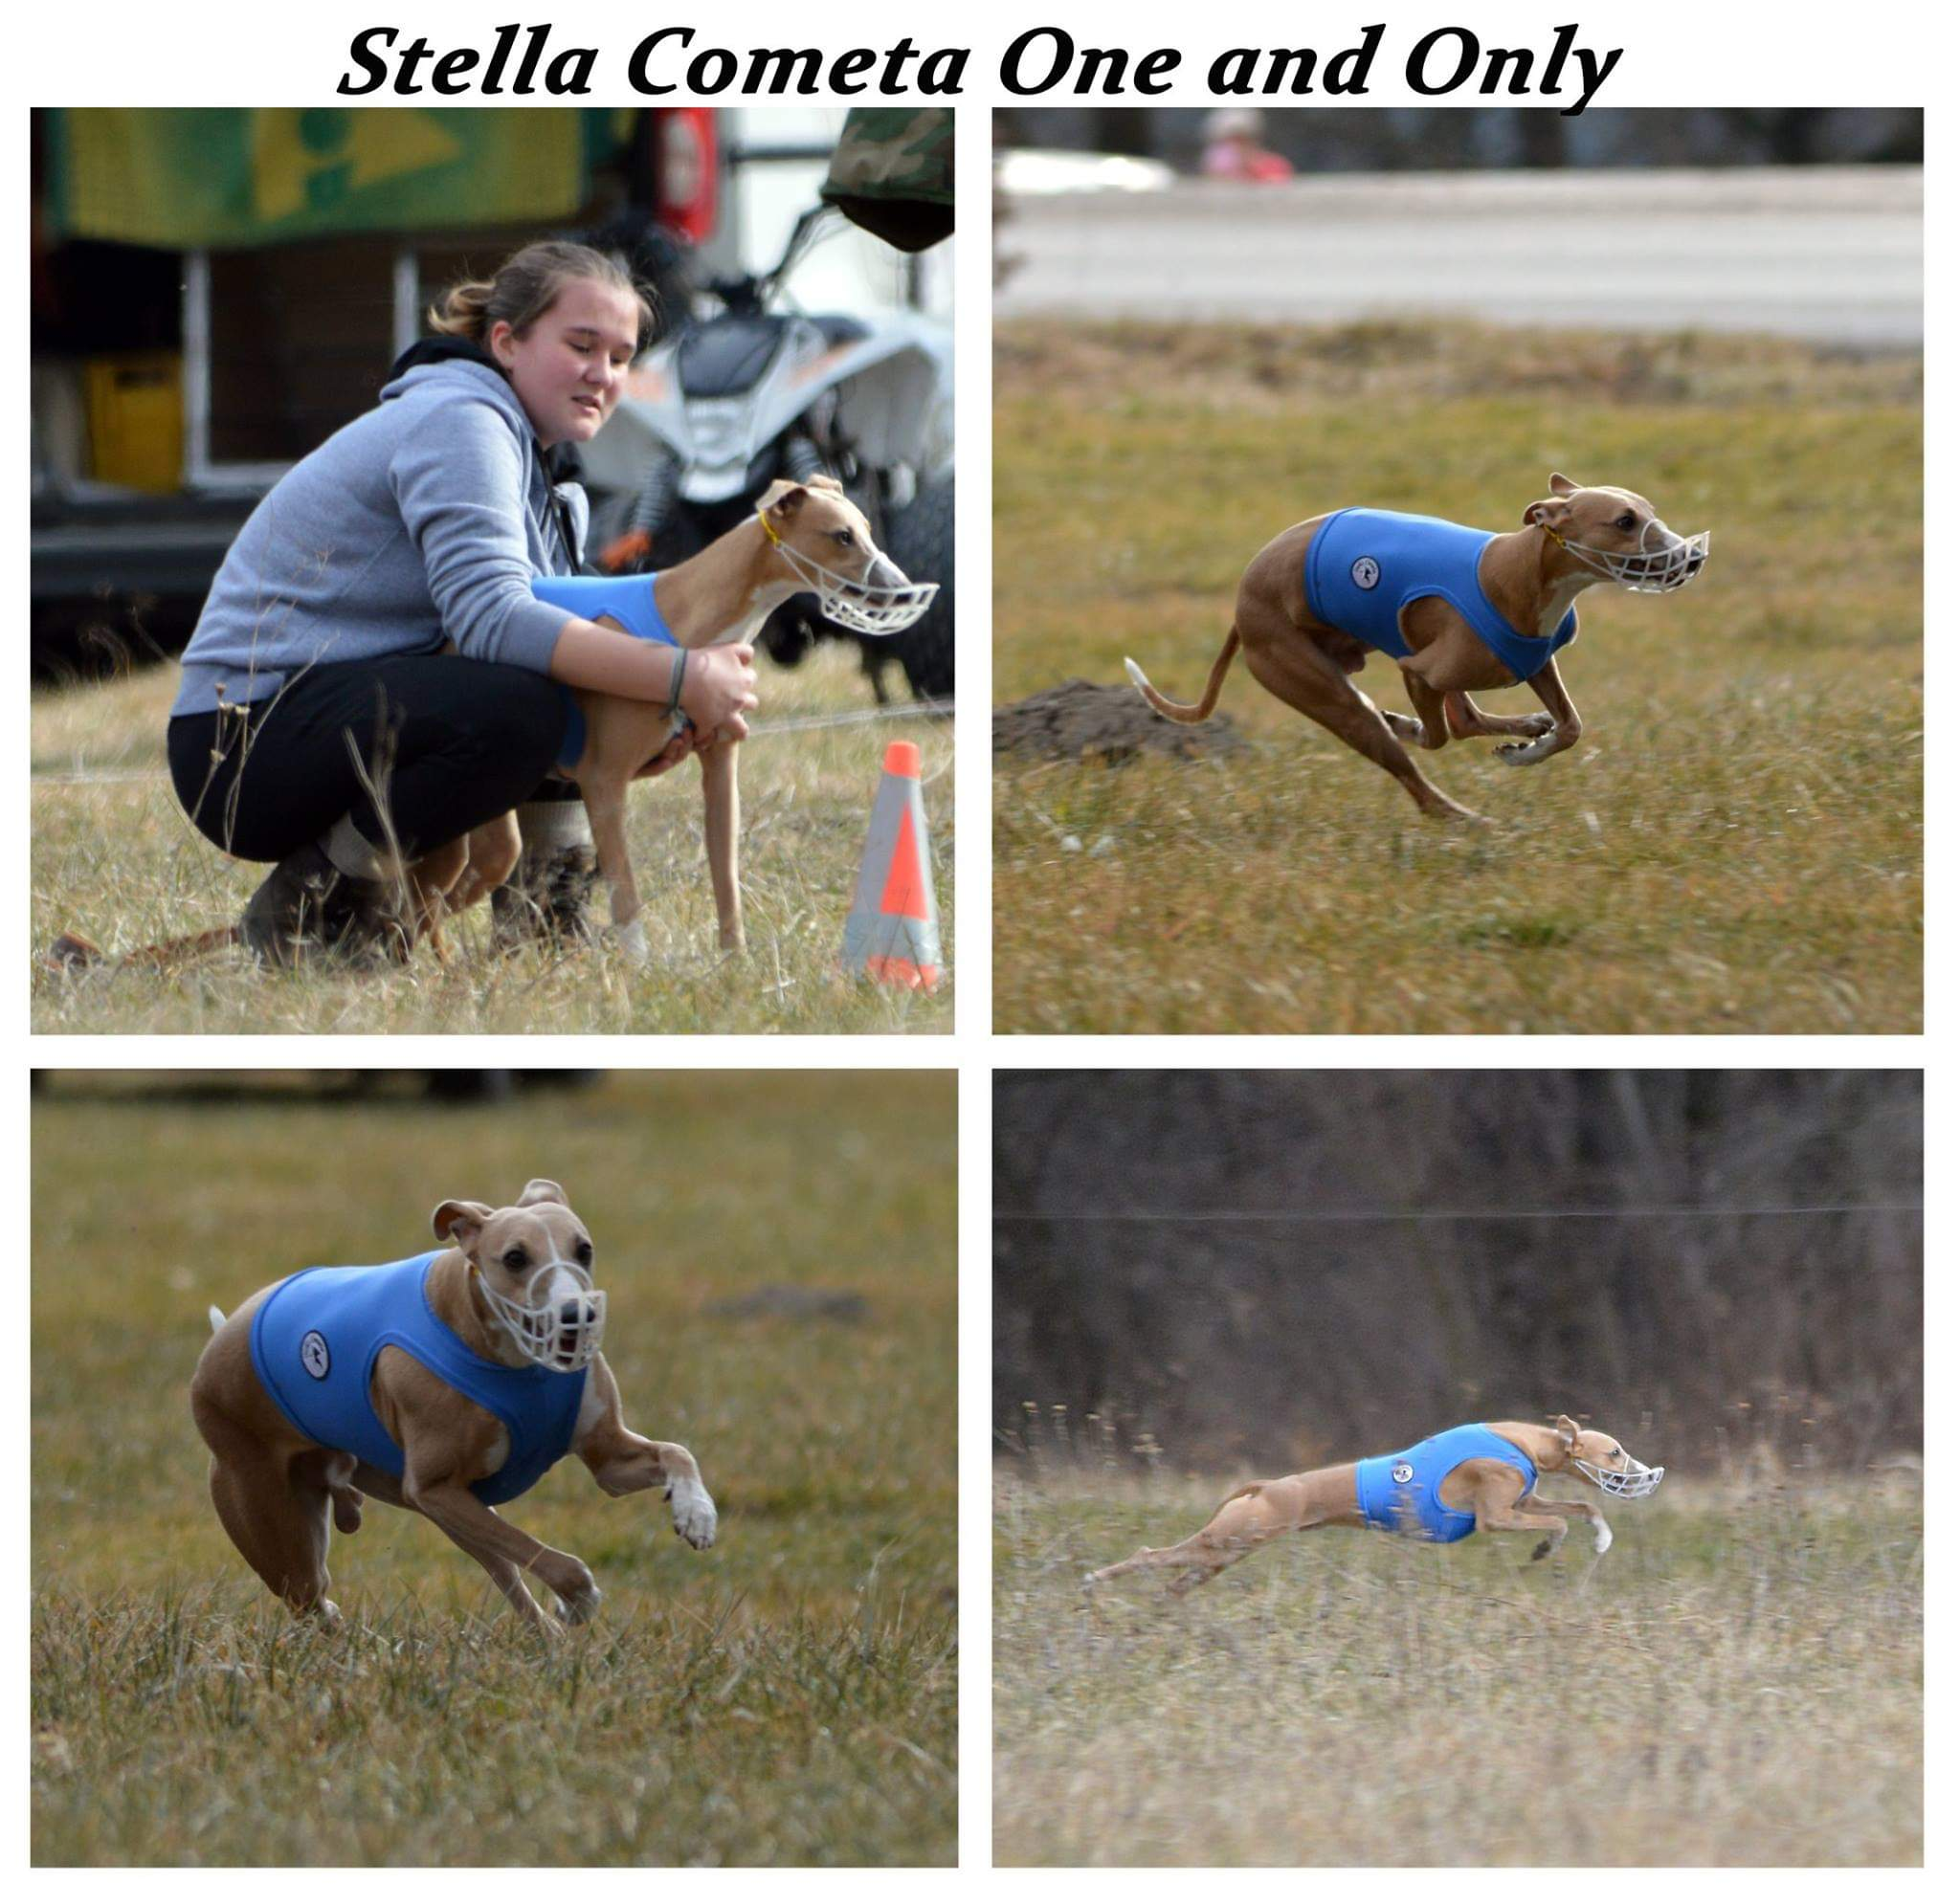 STELLA COMETA ONE AND ONLY